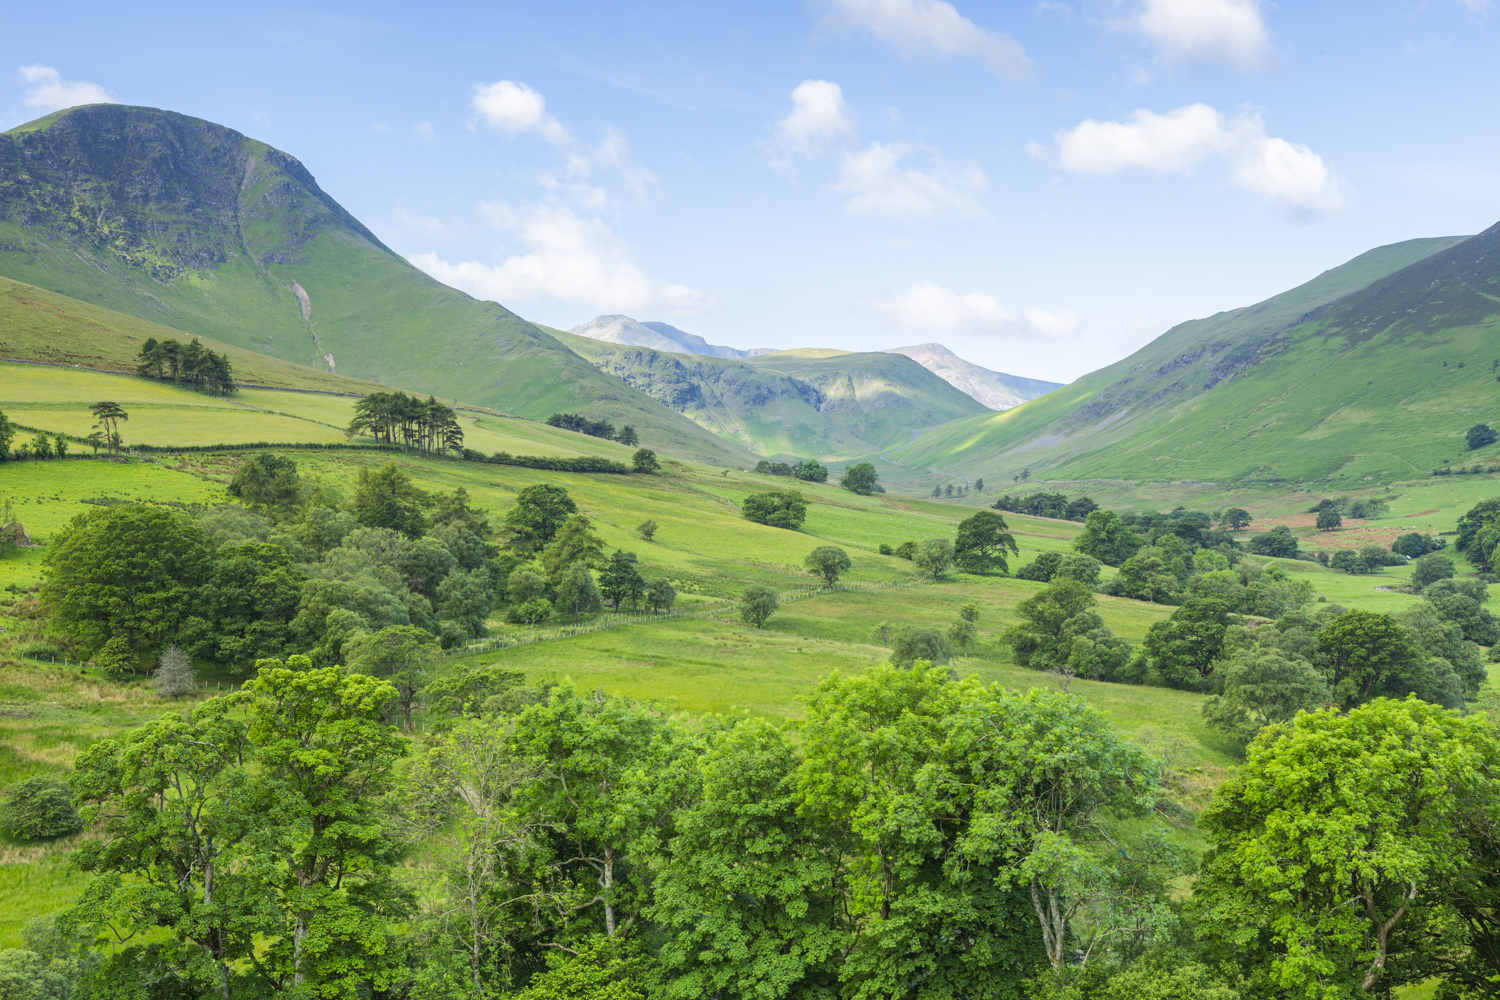 vibrant green trees and hills summer landscape photography